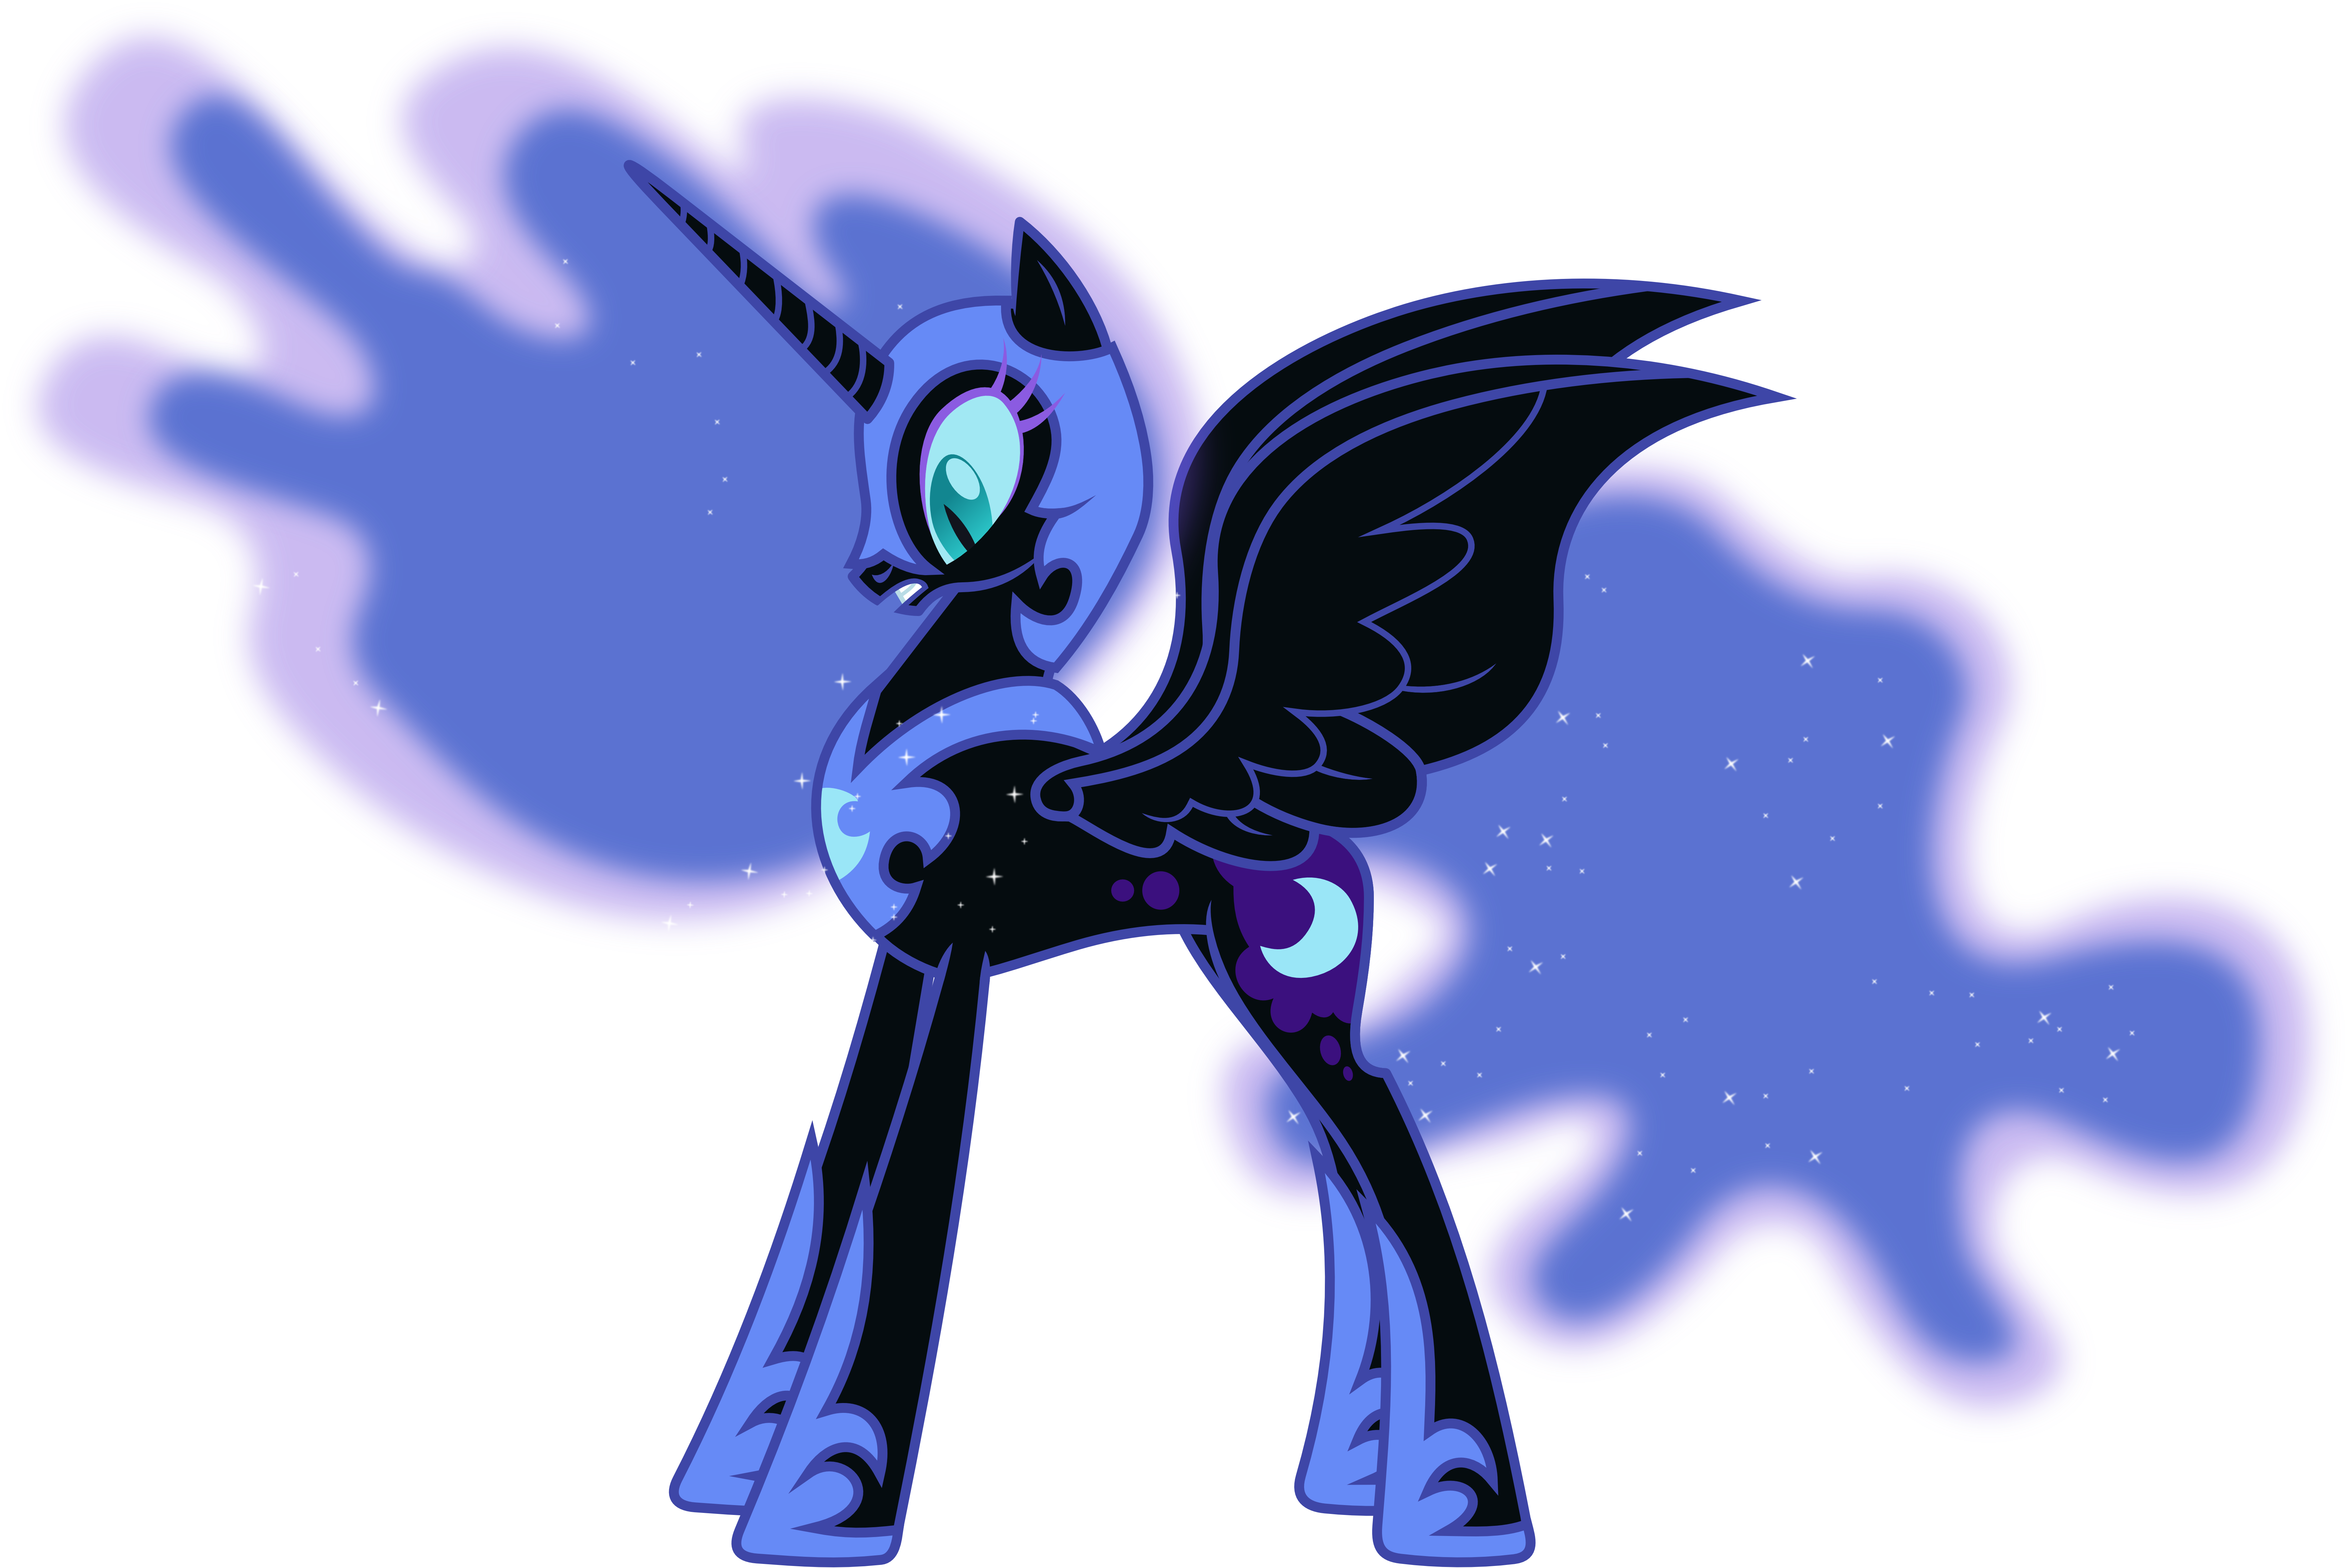 Scared Nightmare Moon (2) by 90Sigma on DeviantArt